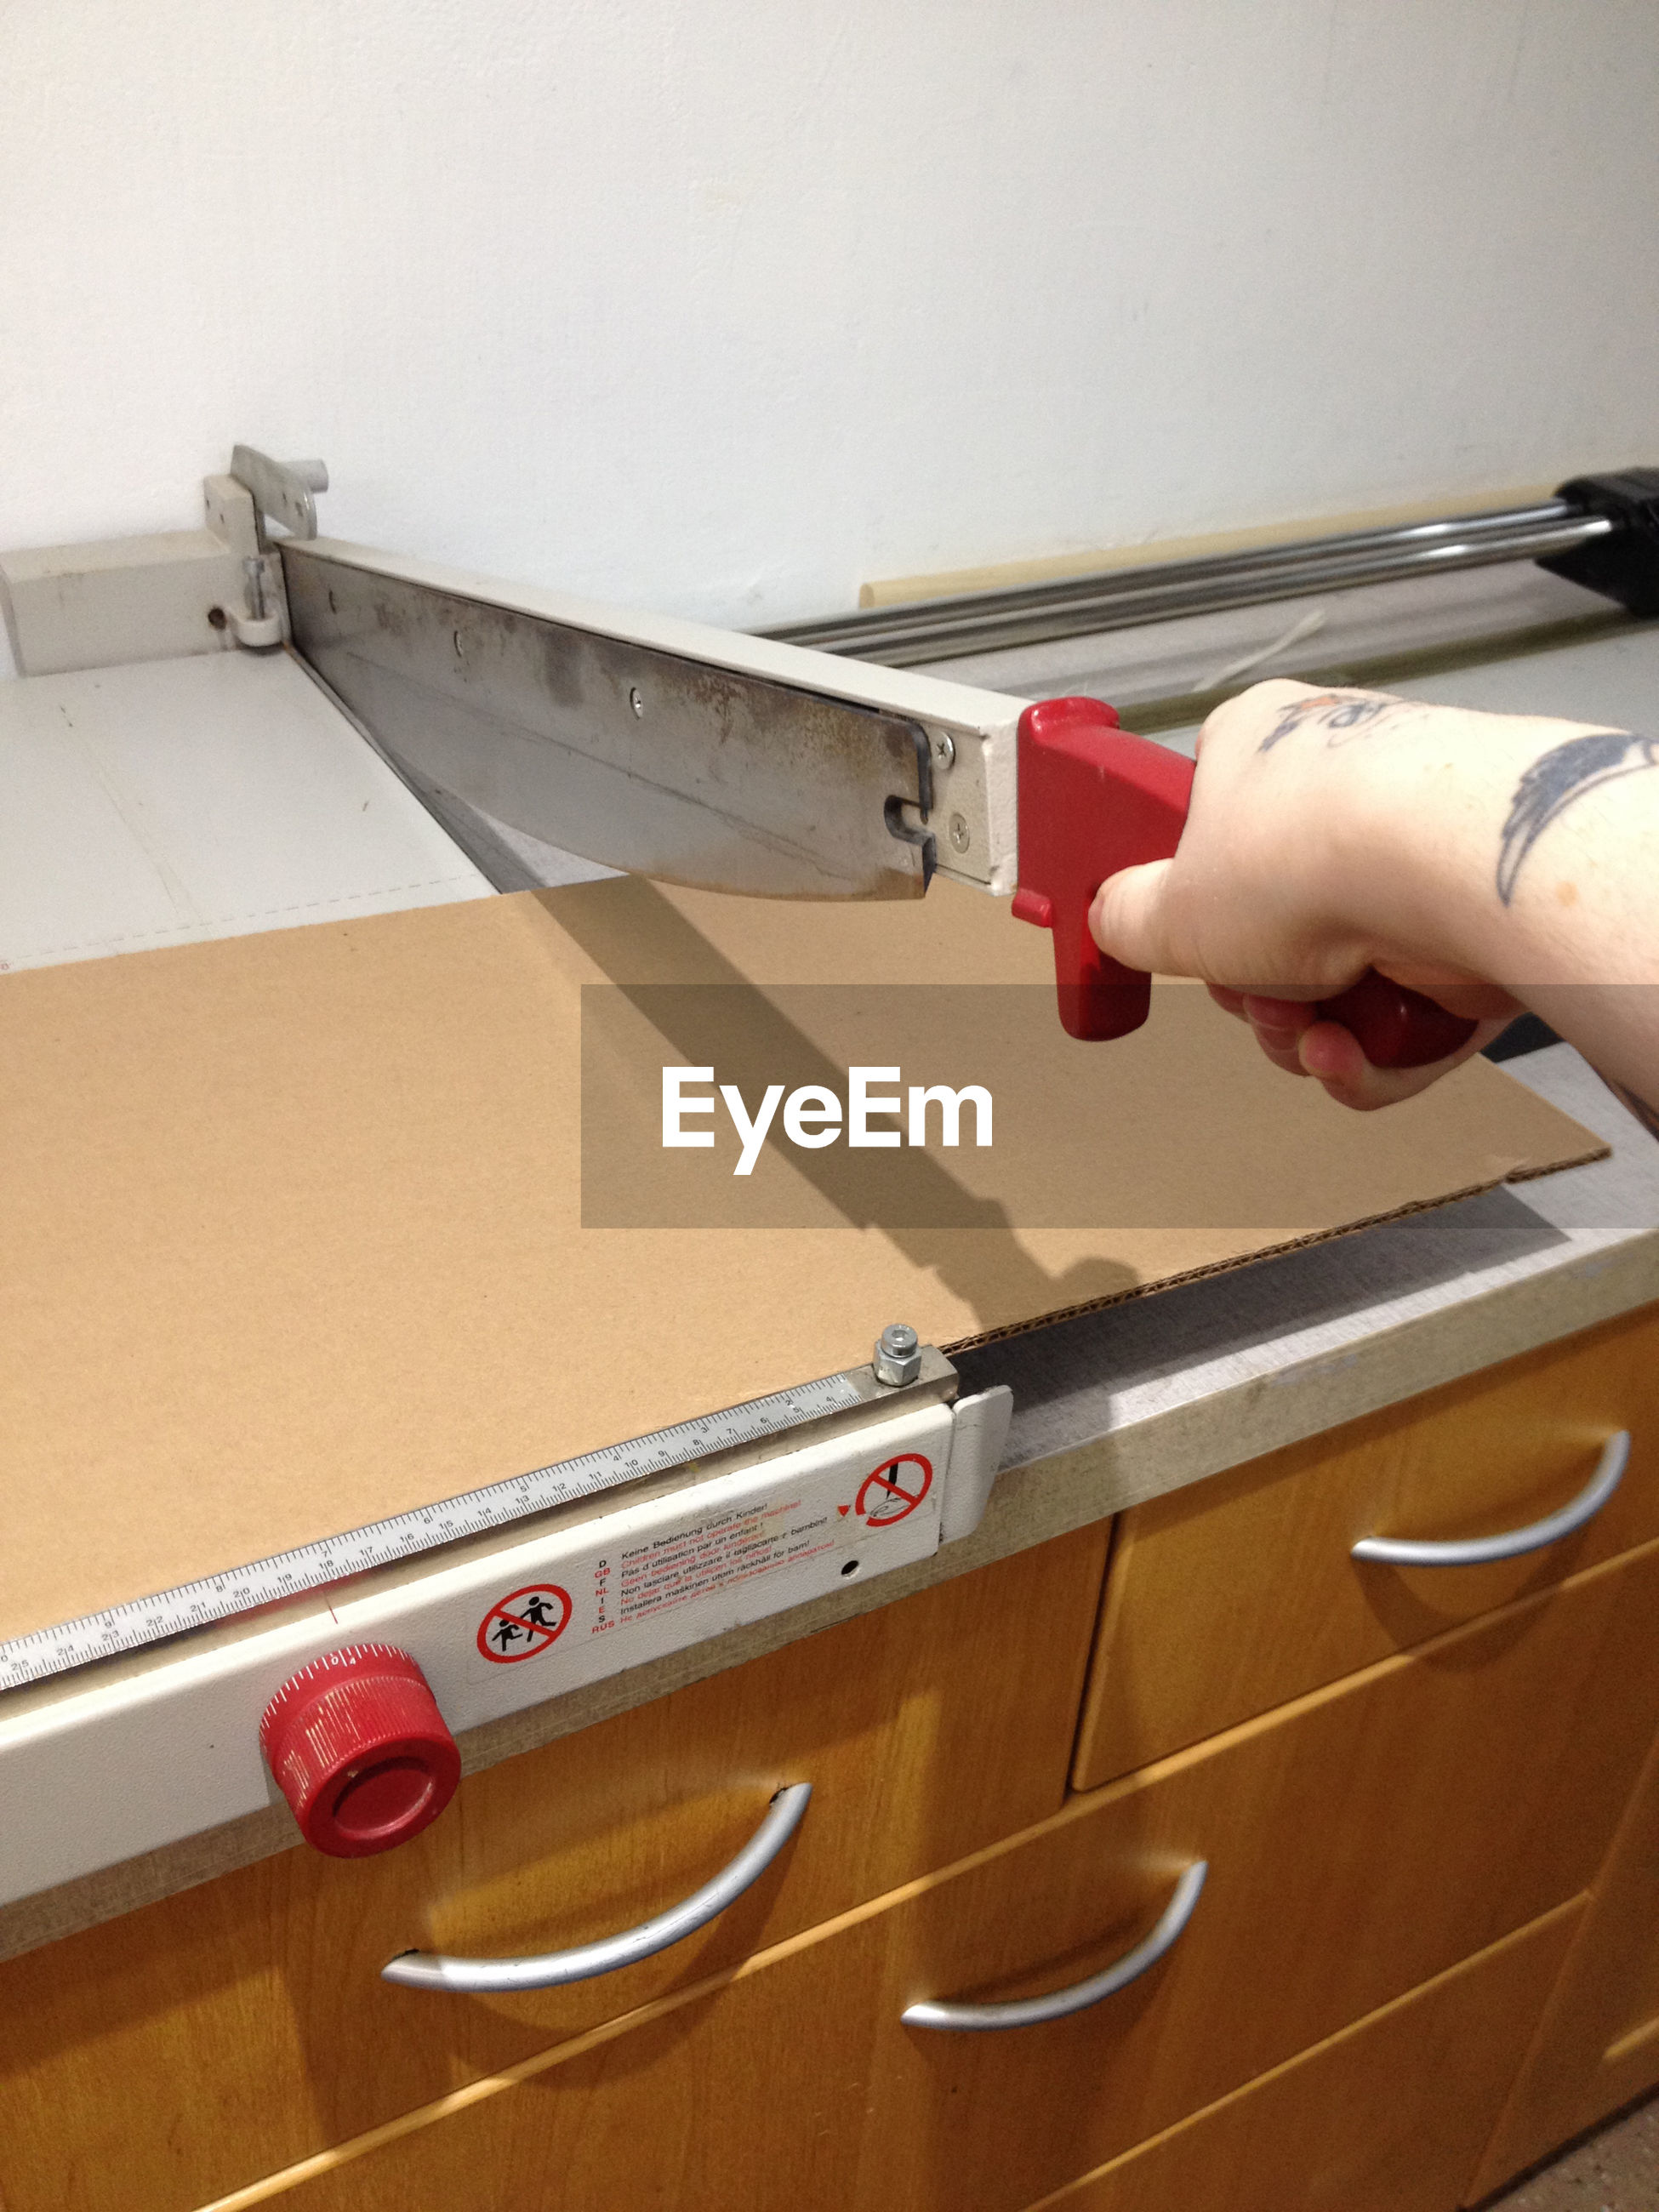 Cropped image of person using cardboard cutting machine